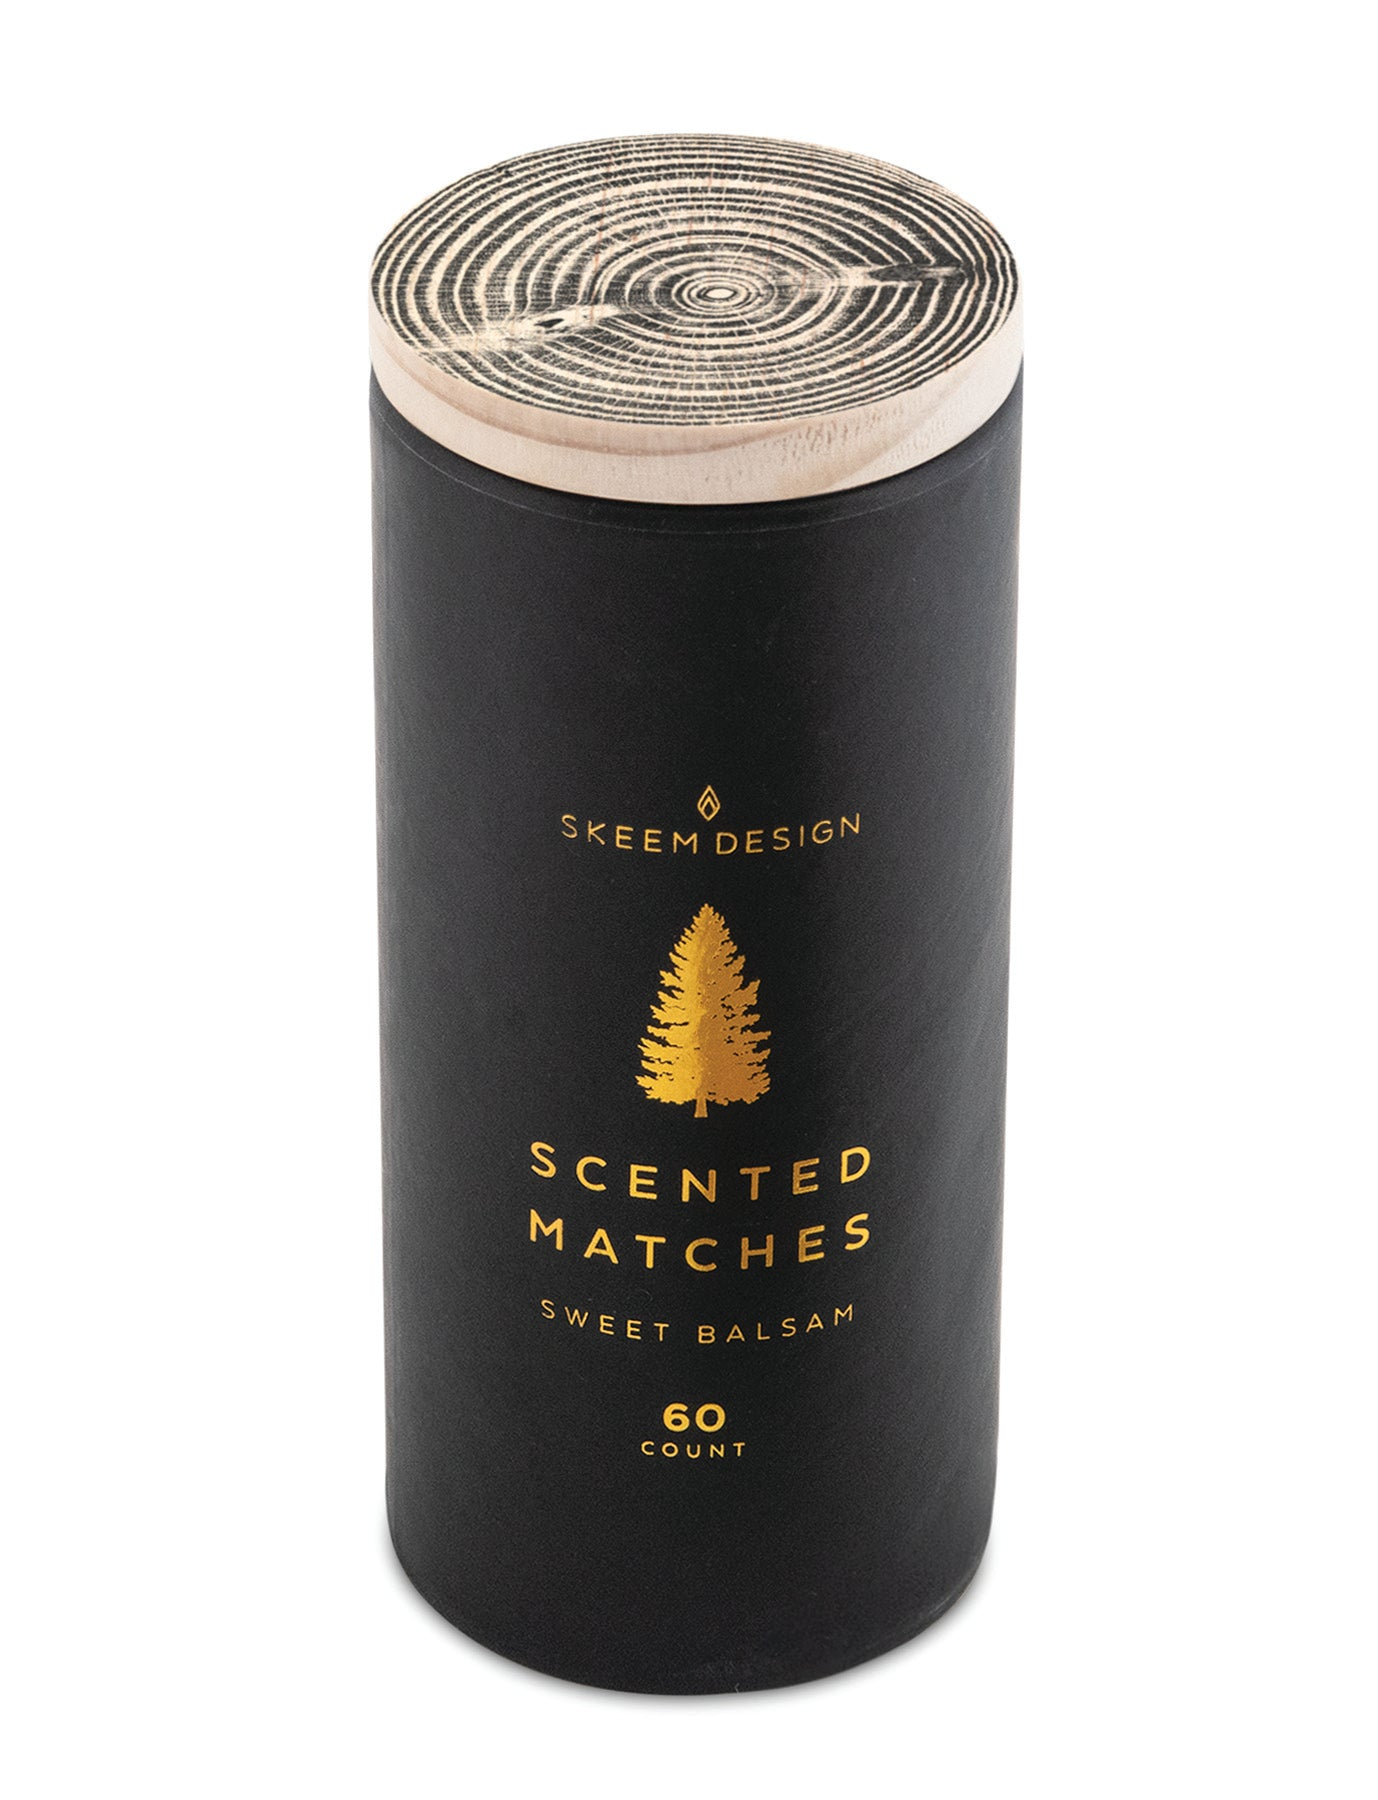 SCENTED MATCHES - SWEET BALSAM